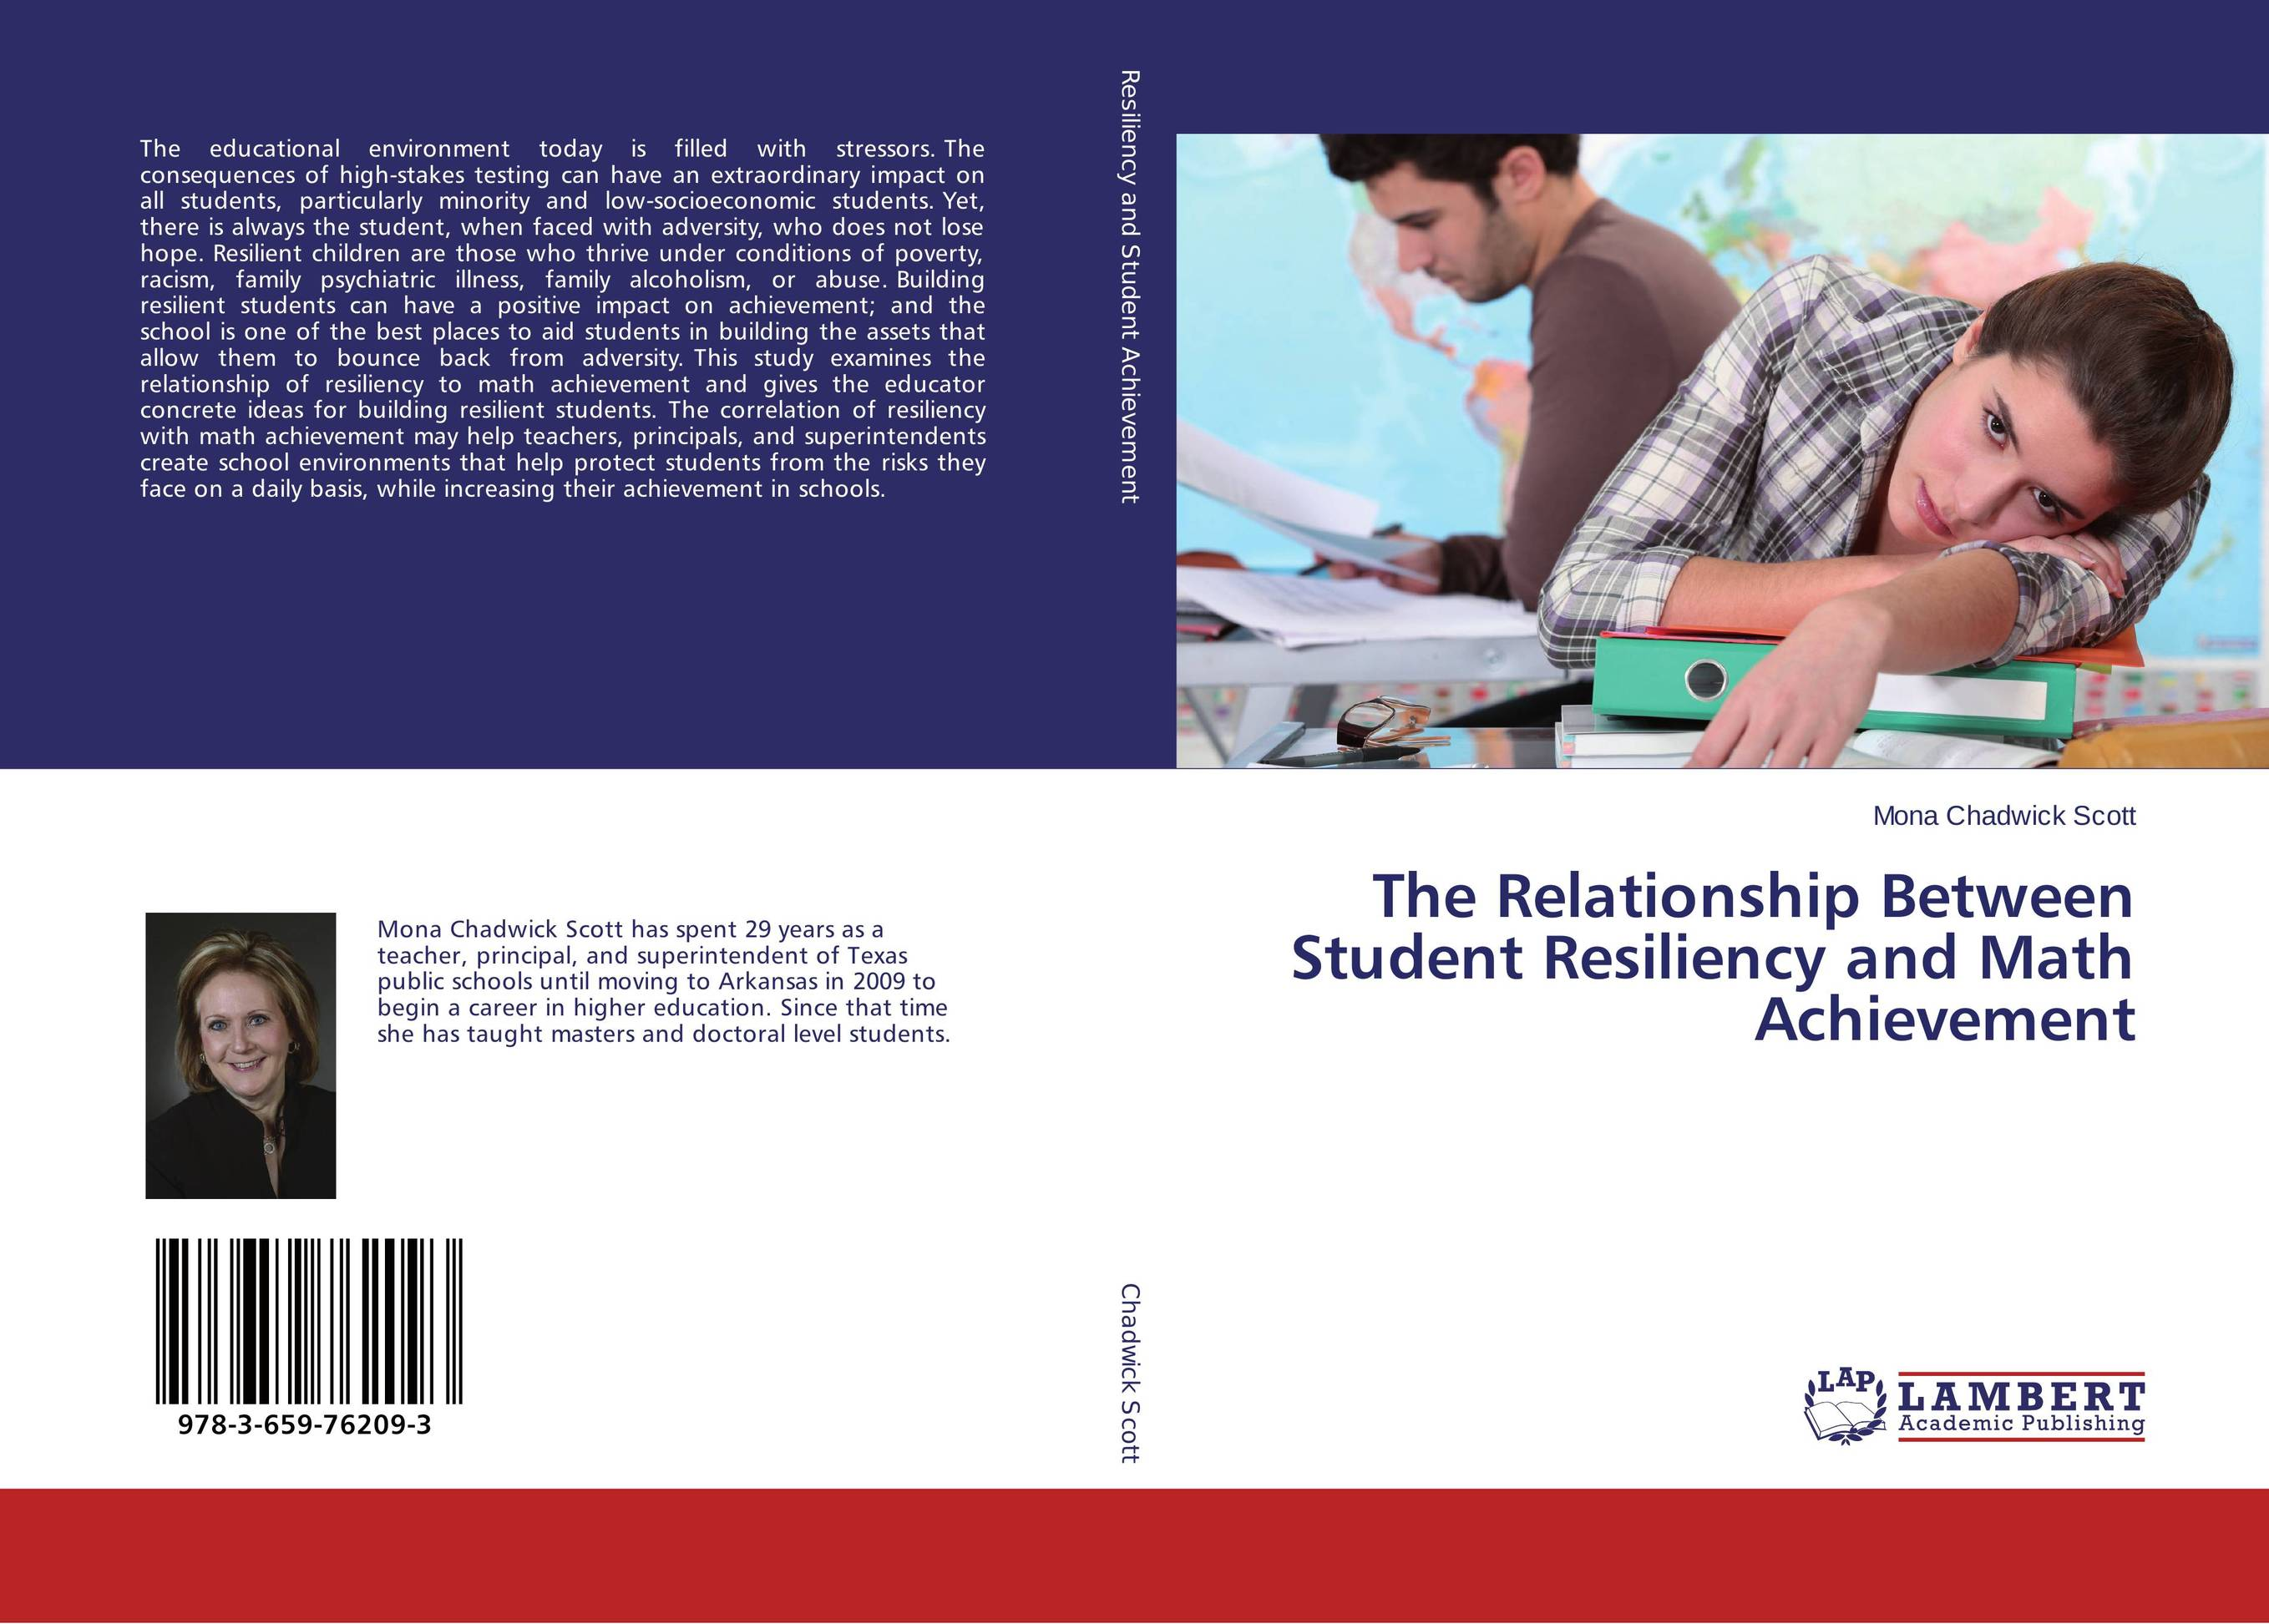 low student achievement Research ties 14 factors to student achievement, and low-income and minority children are at a disadvantage in almost all of them educators are now engaging in stocktaking as we recognize that 50 years have passed since the us supreme court's brown v board of education decision i have been.